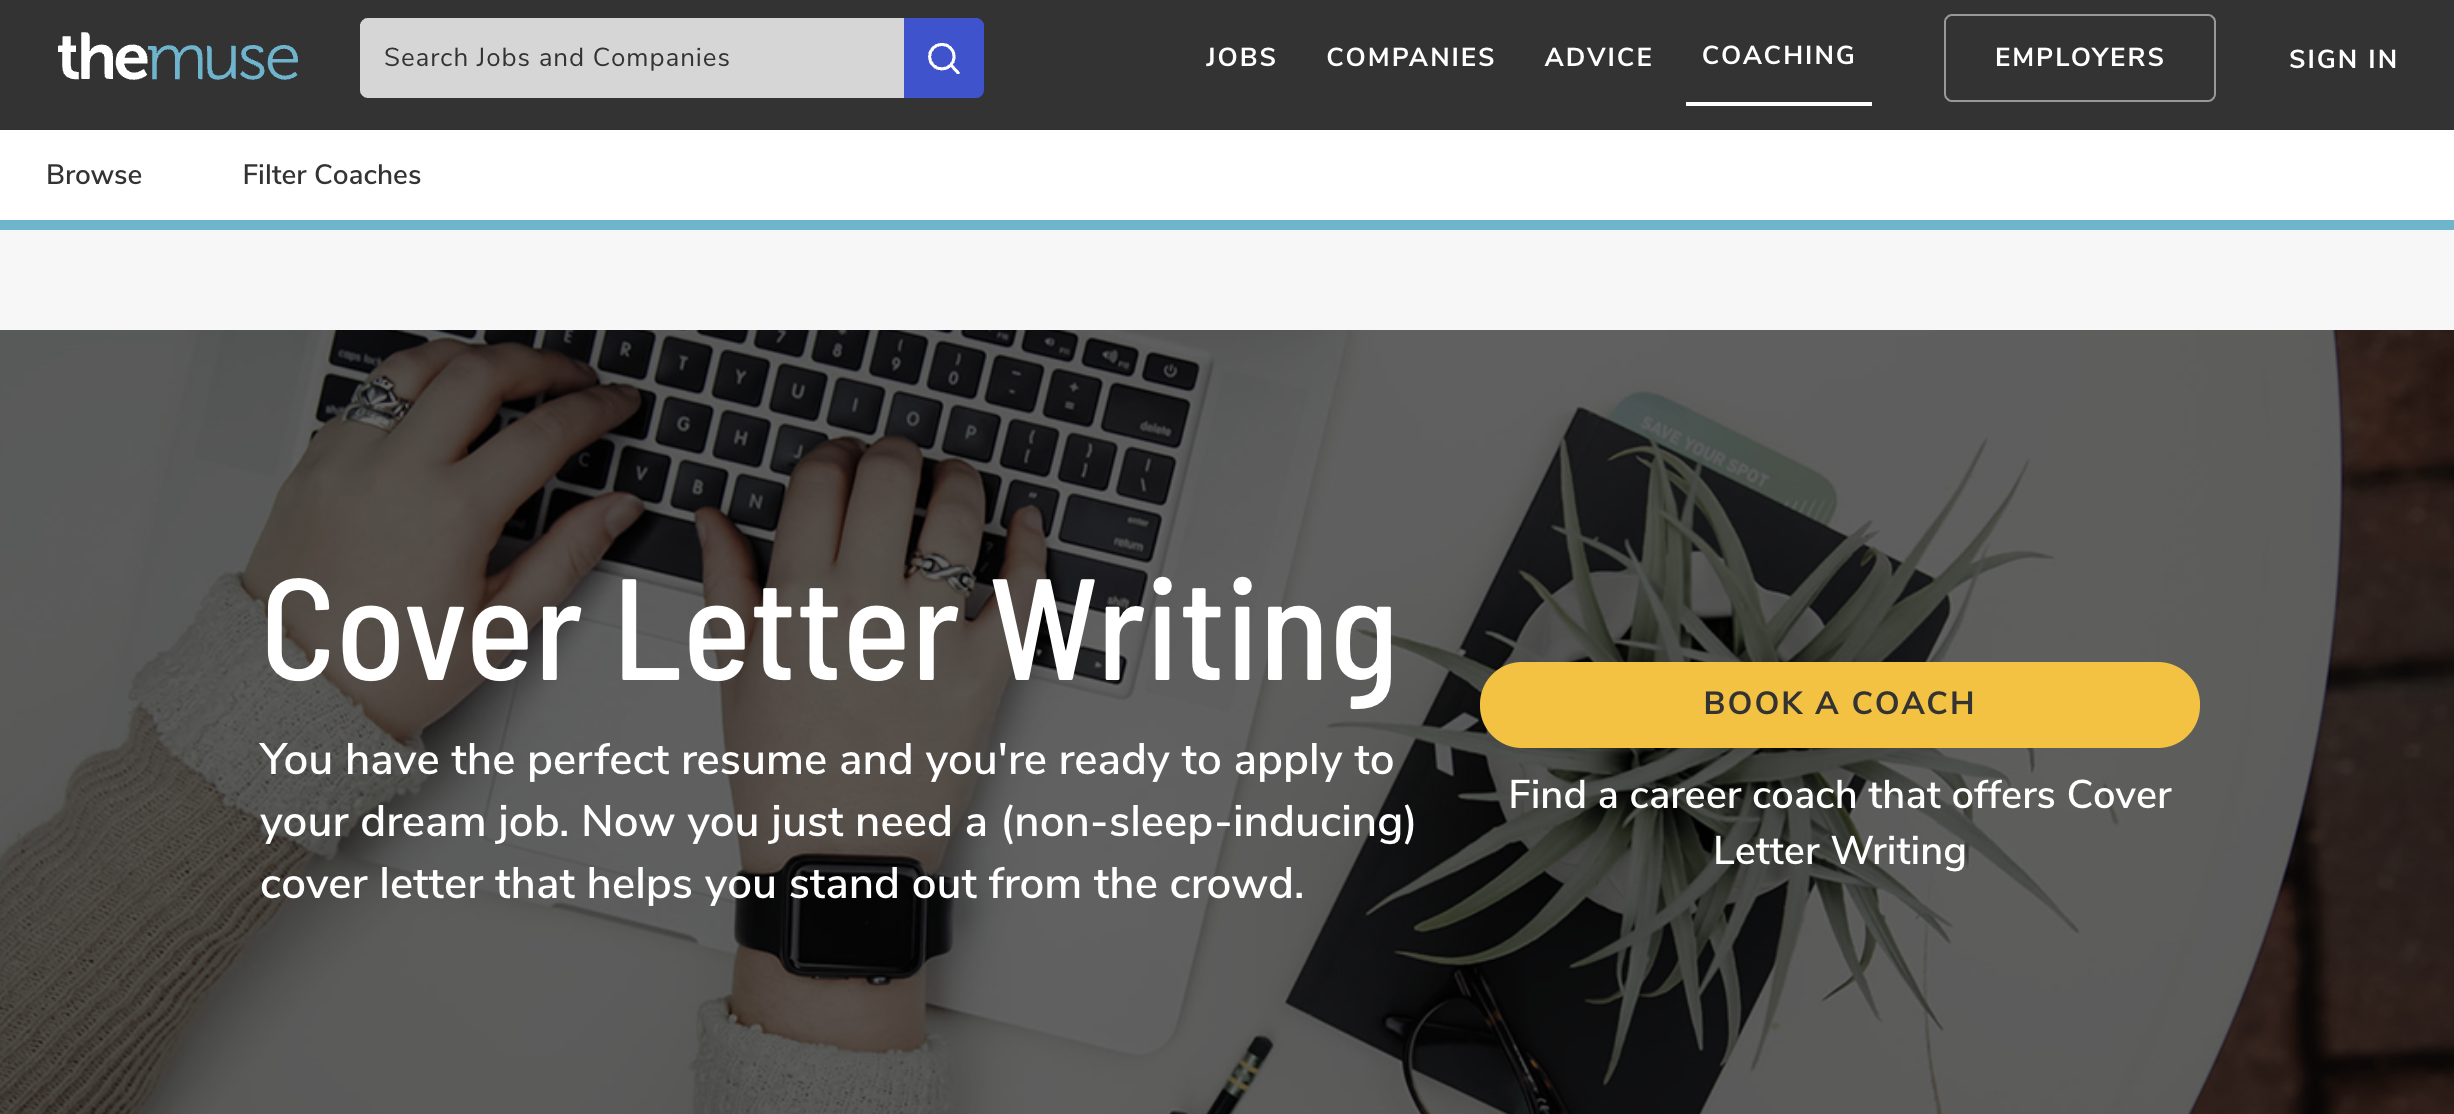 The Muse - Cover Letter Writing Service